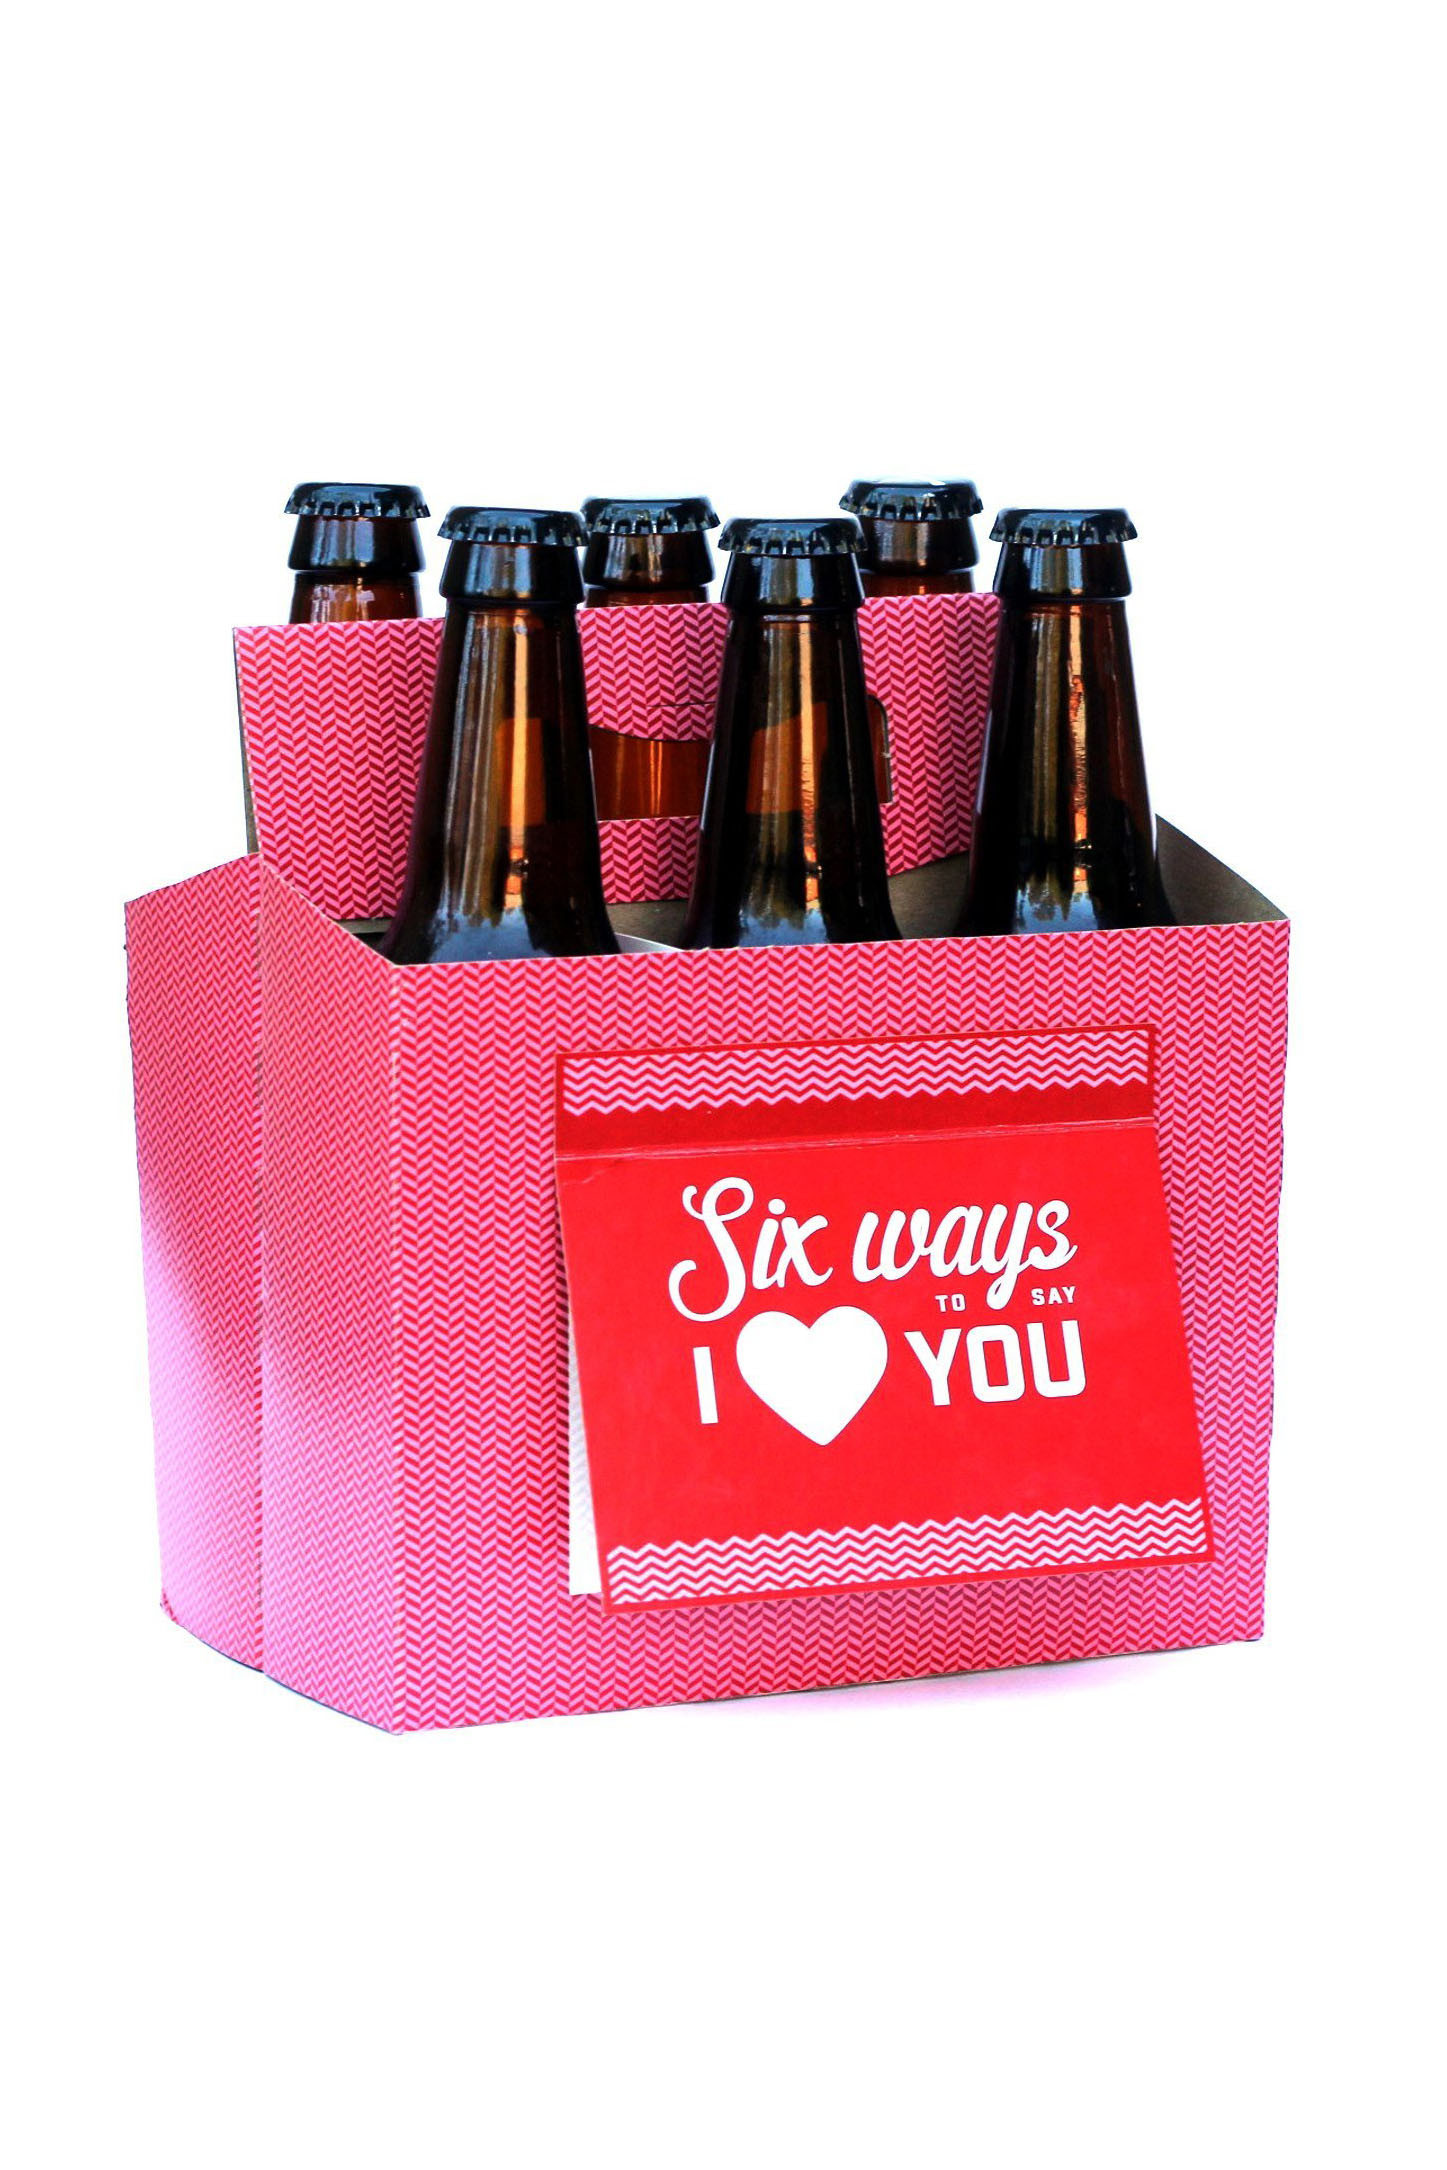 Valentines Gift For Guys Ideas  30 Best Valentine s Day Gifts for Him 2017 Good Ideas